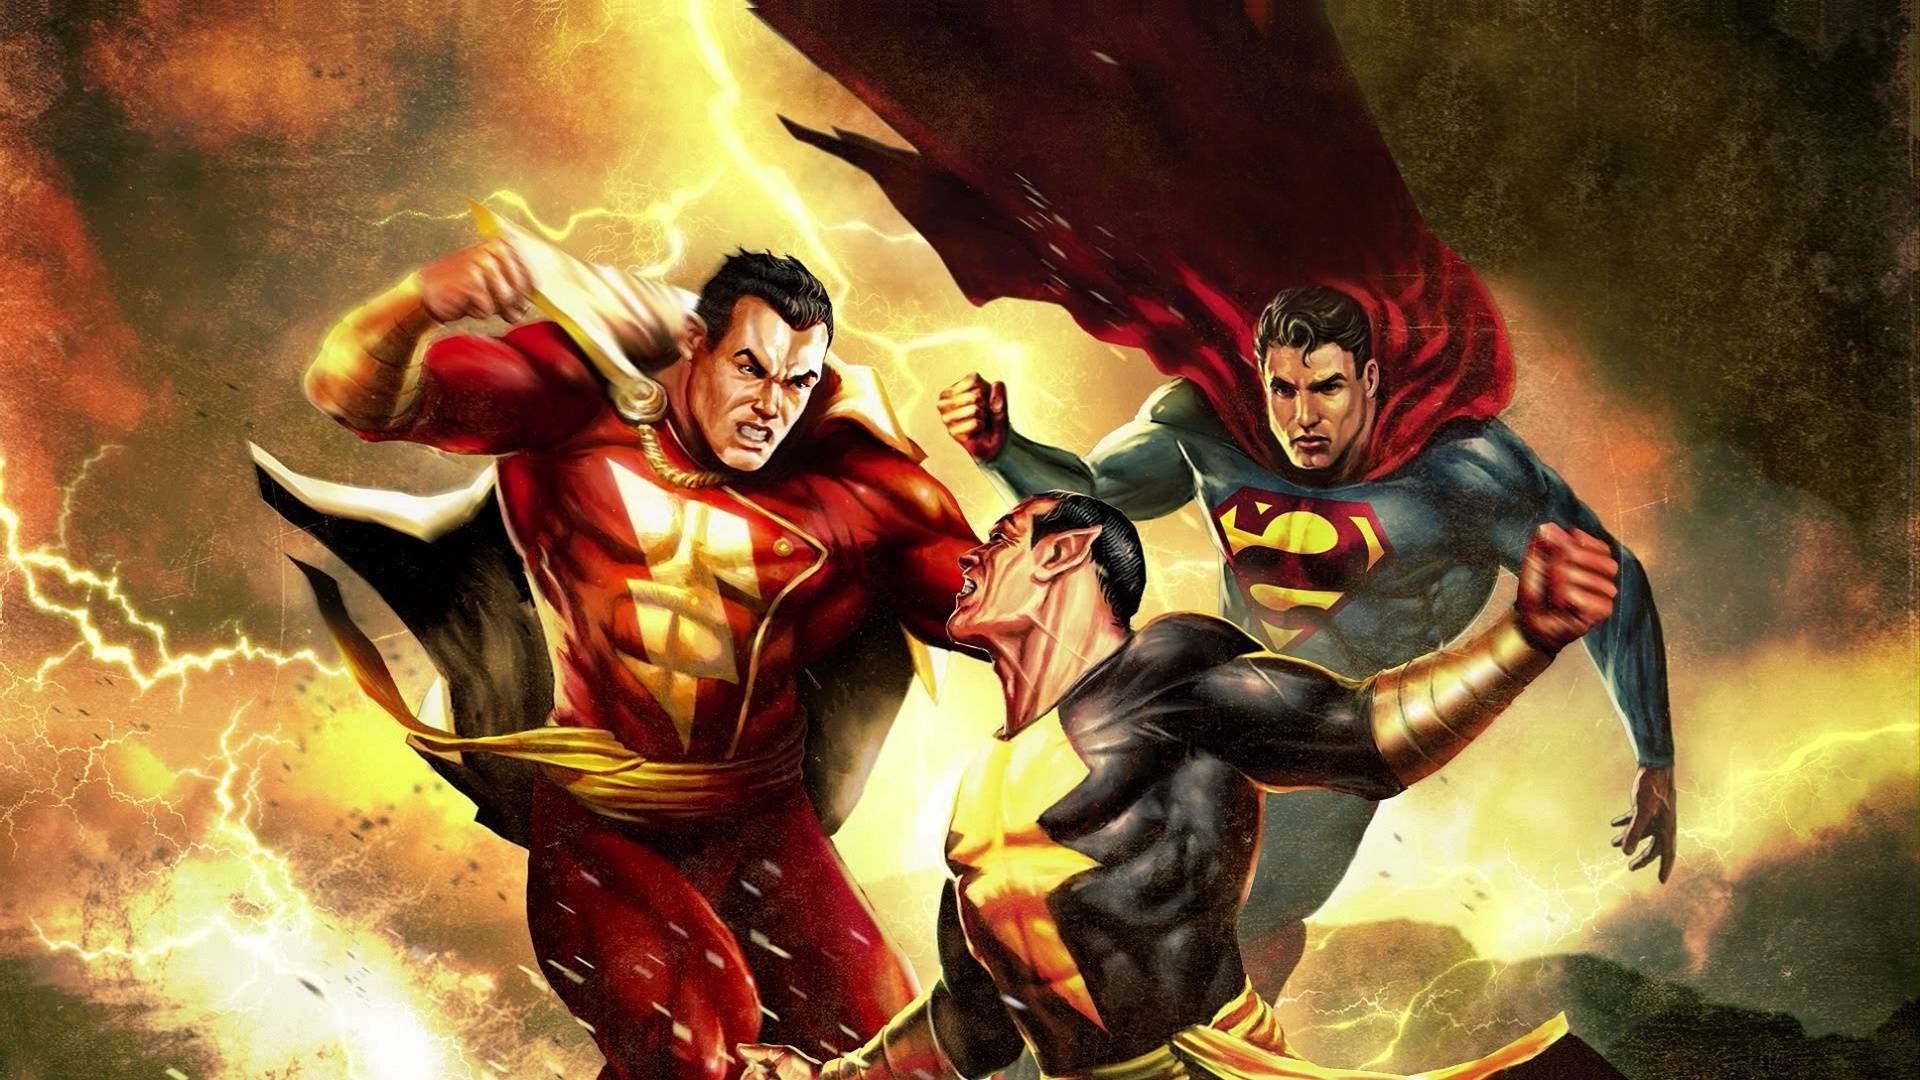 Shazam Wallpapers   Top Shazam Backgrounds   WallpaperAccess 1920x1080